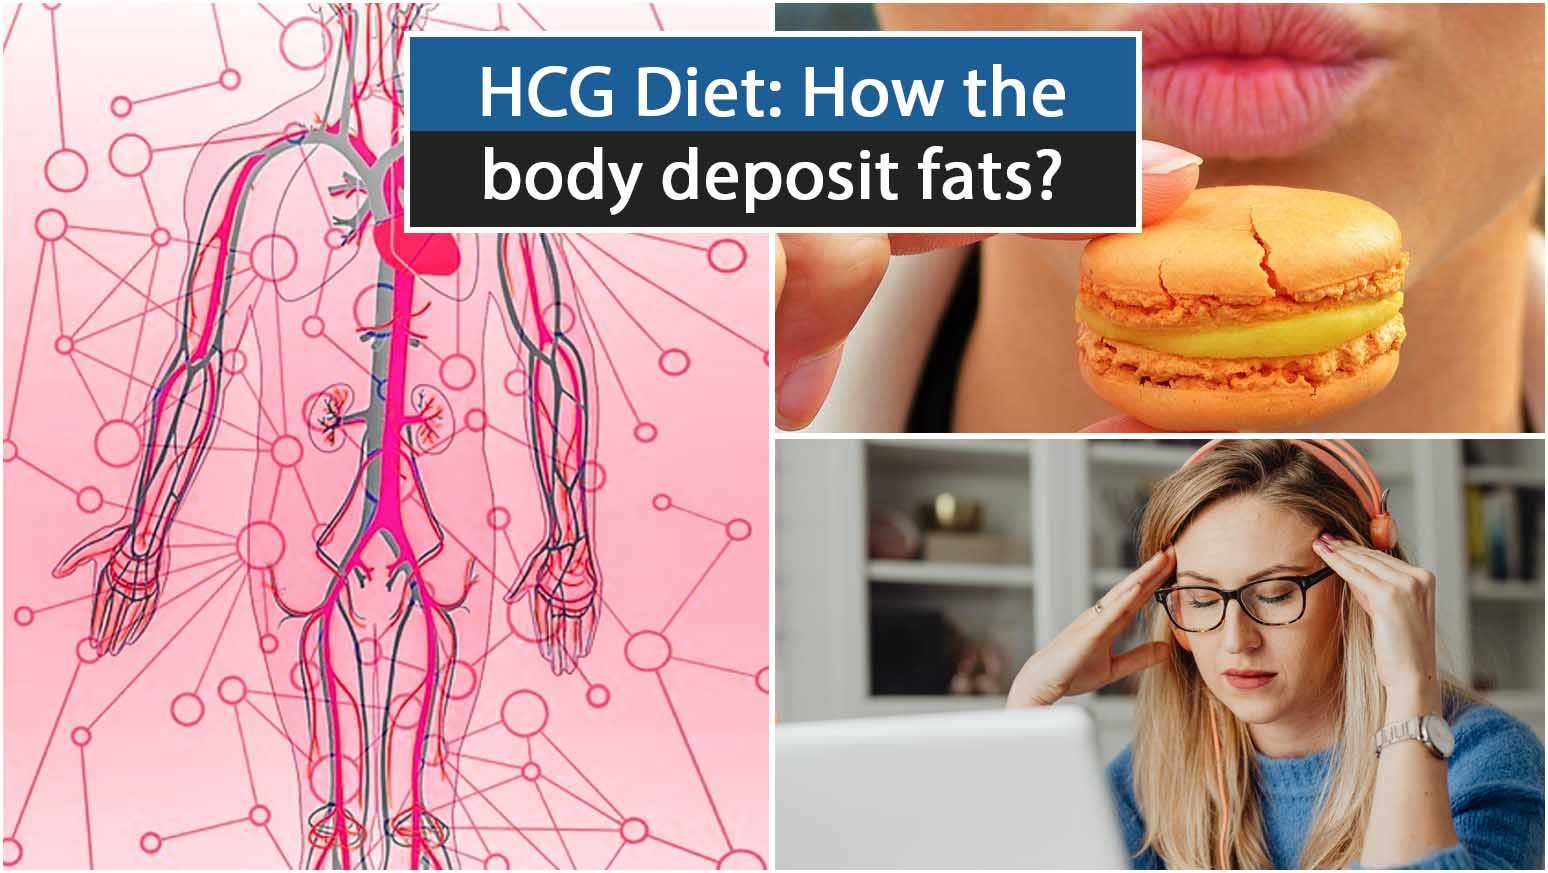 HCG Diet How the body deposit fats